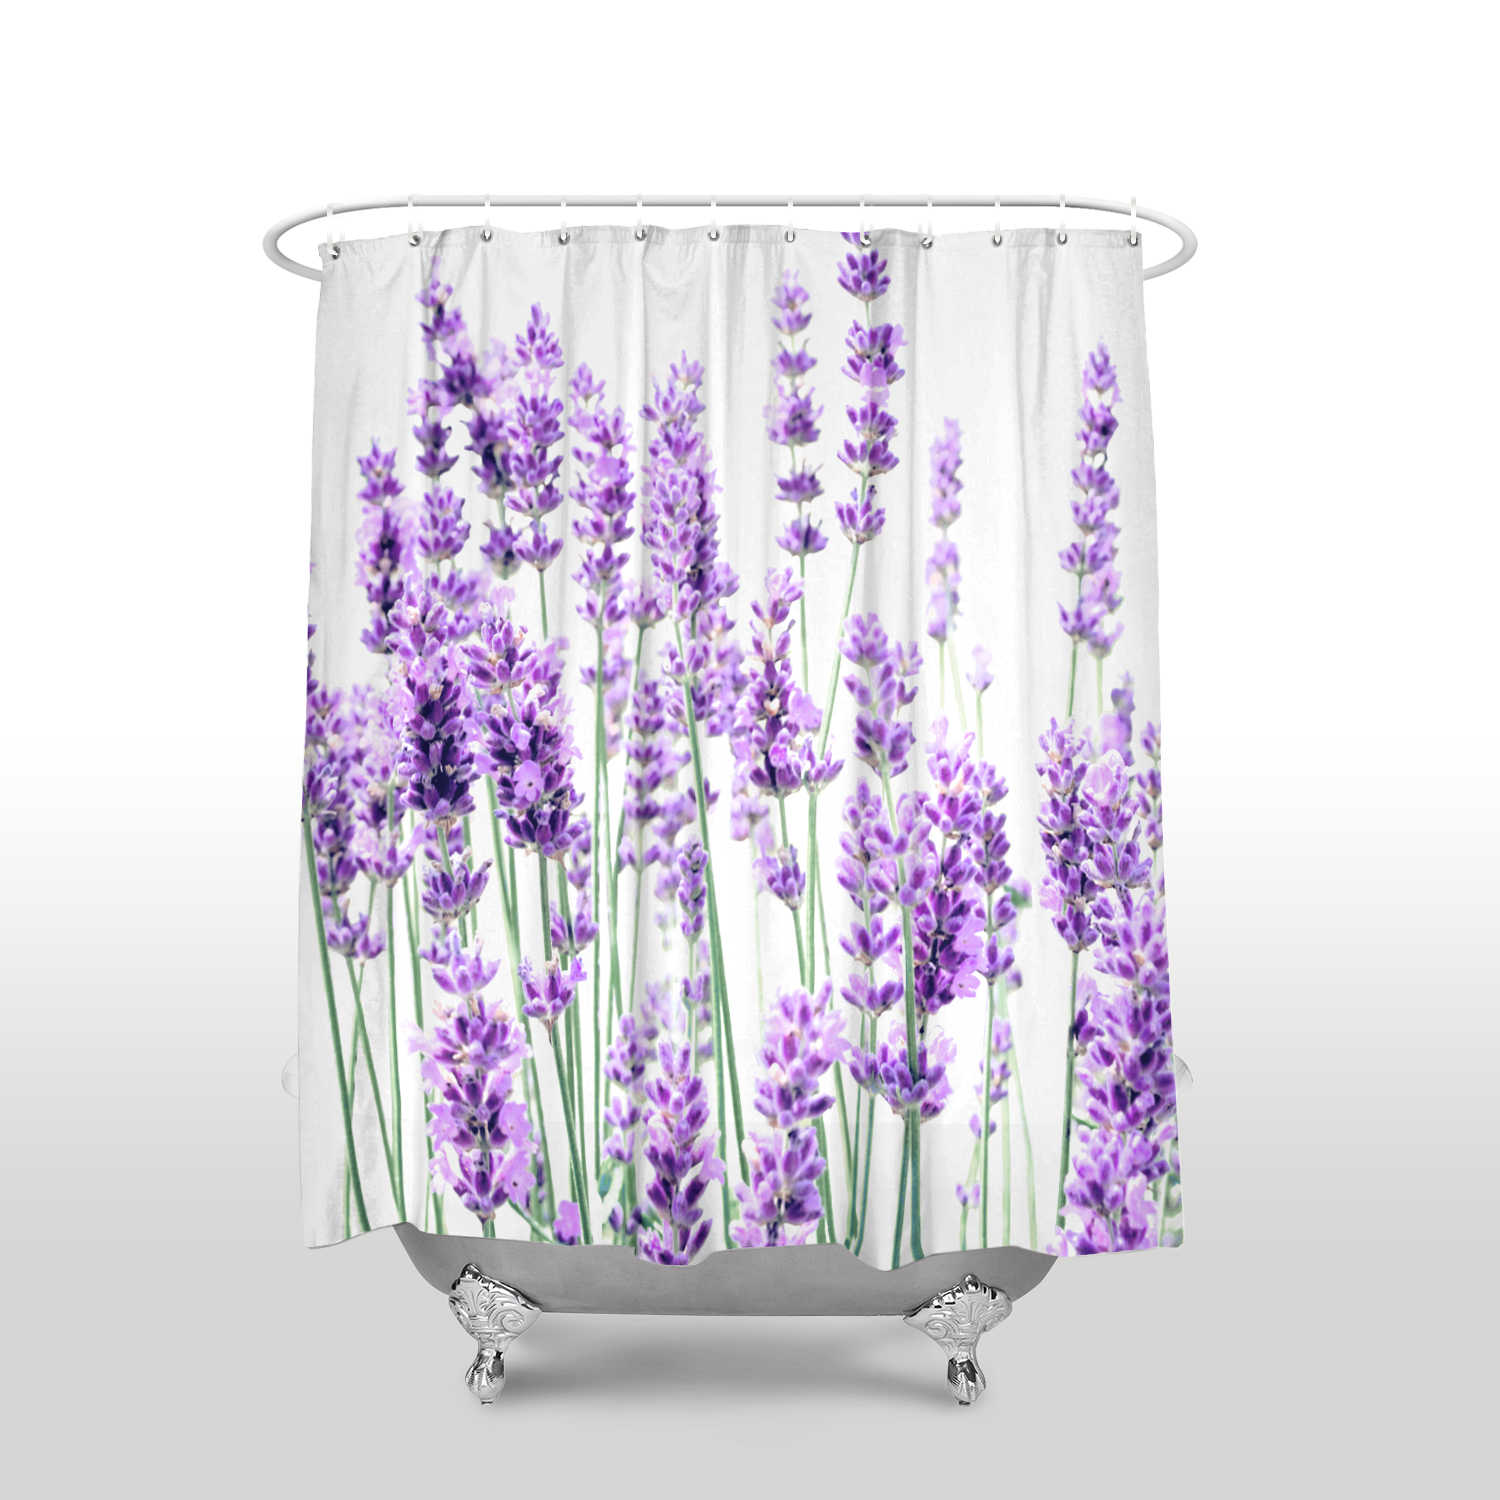 new arrival waterproof lavender shower curtain with hooks polyester fabric flower pattern bathroom curtains for home decor